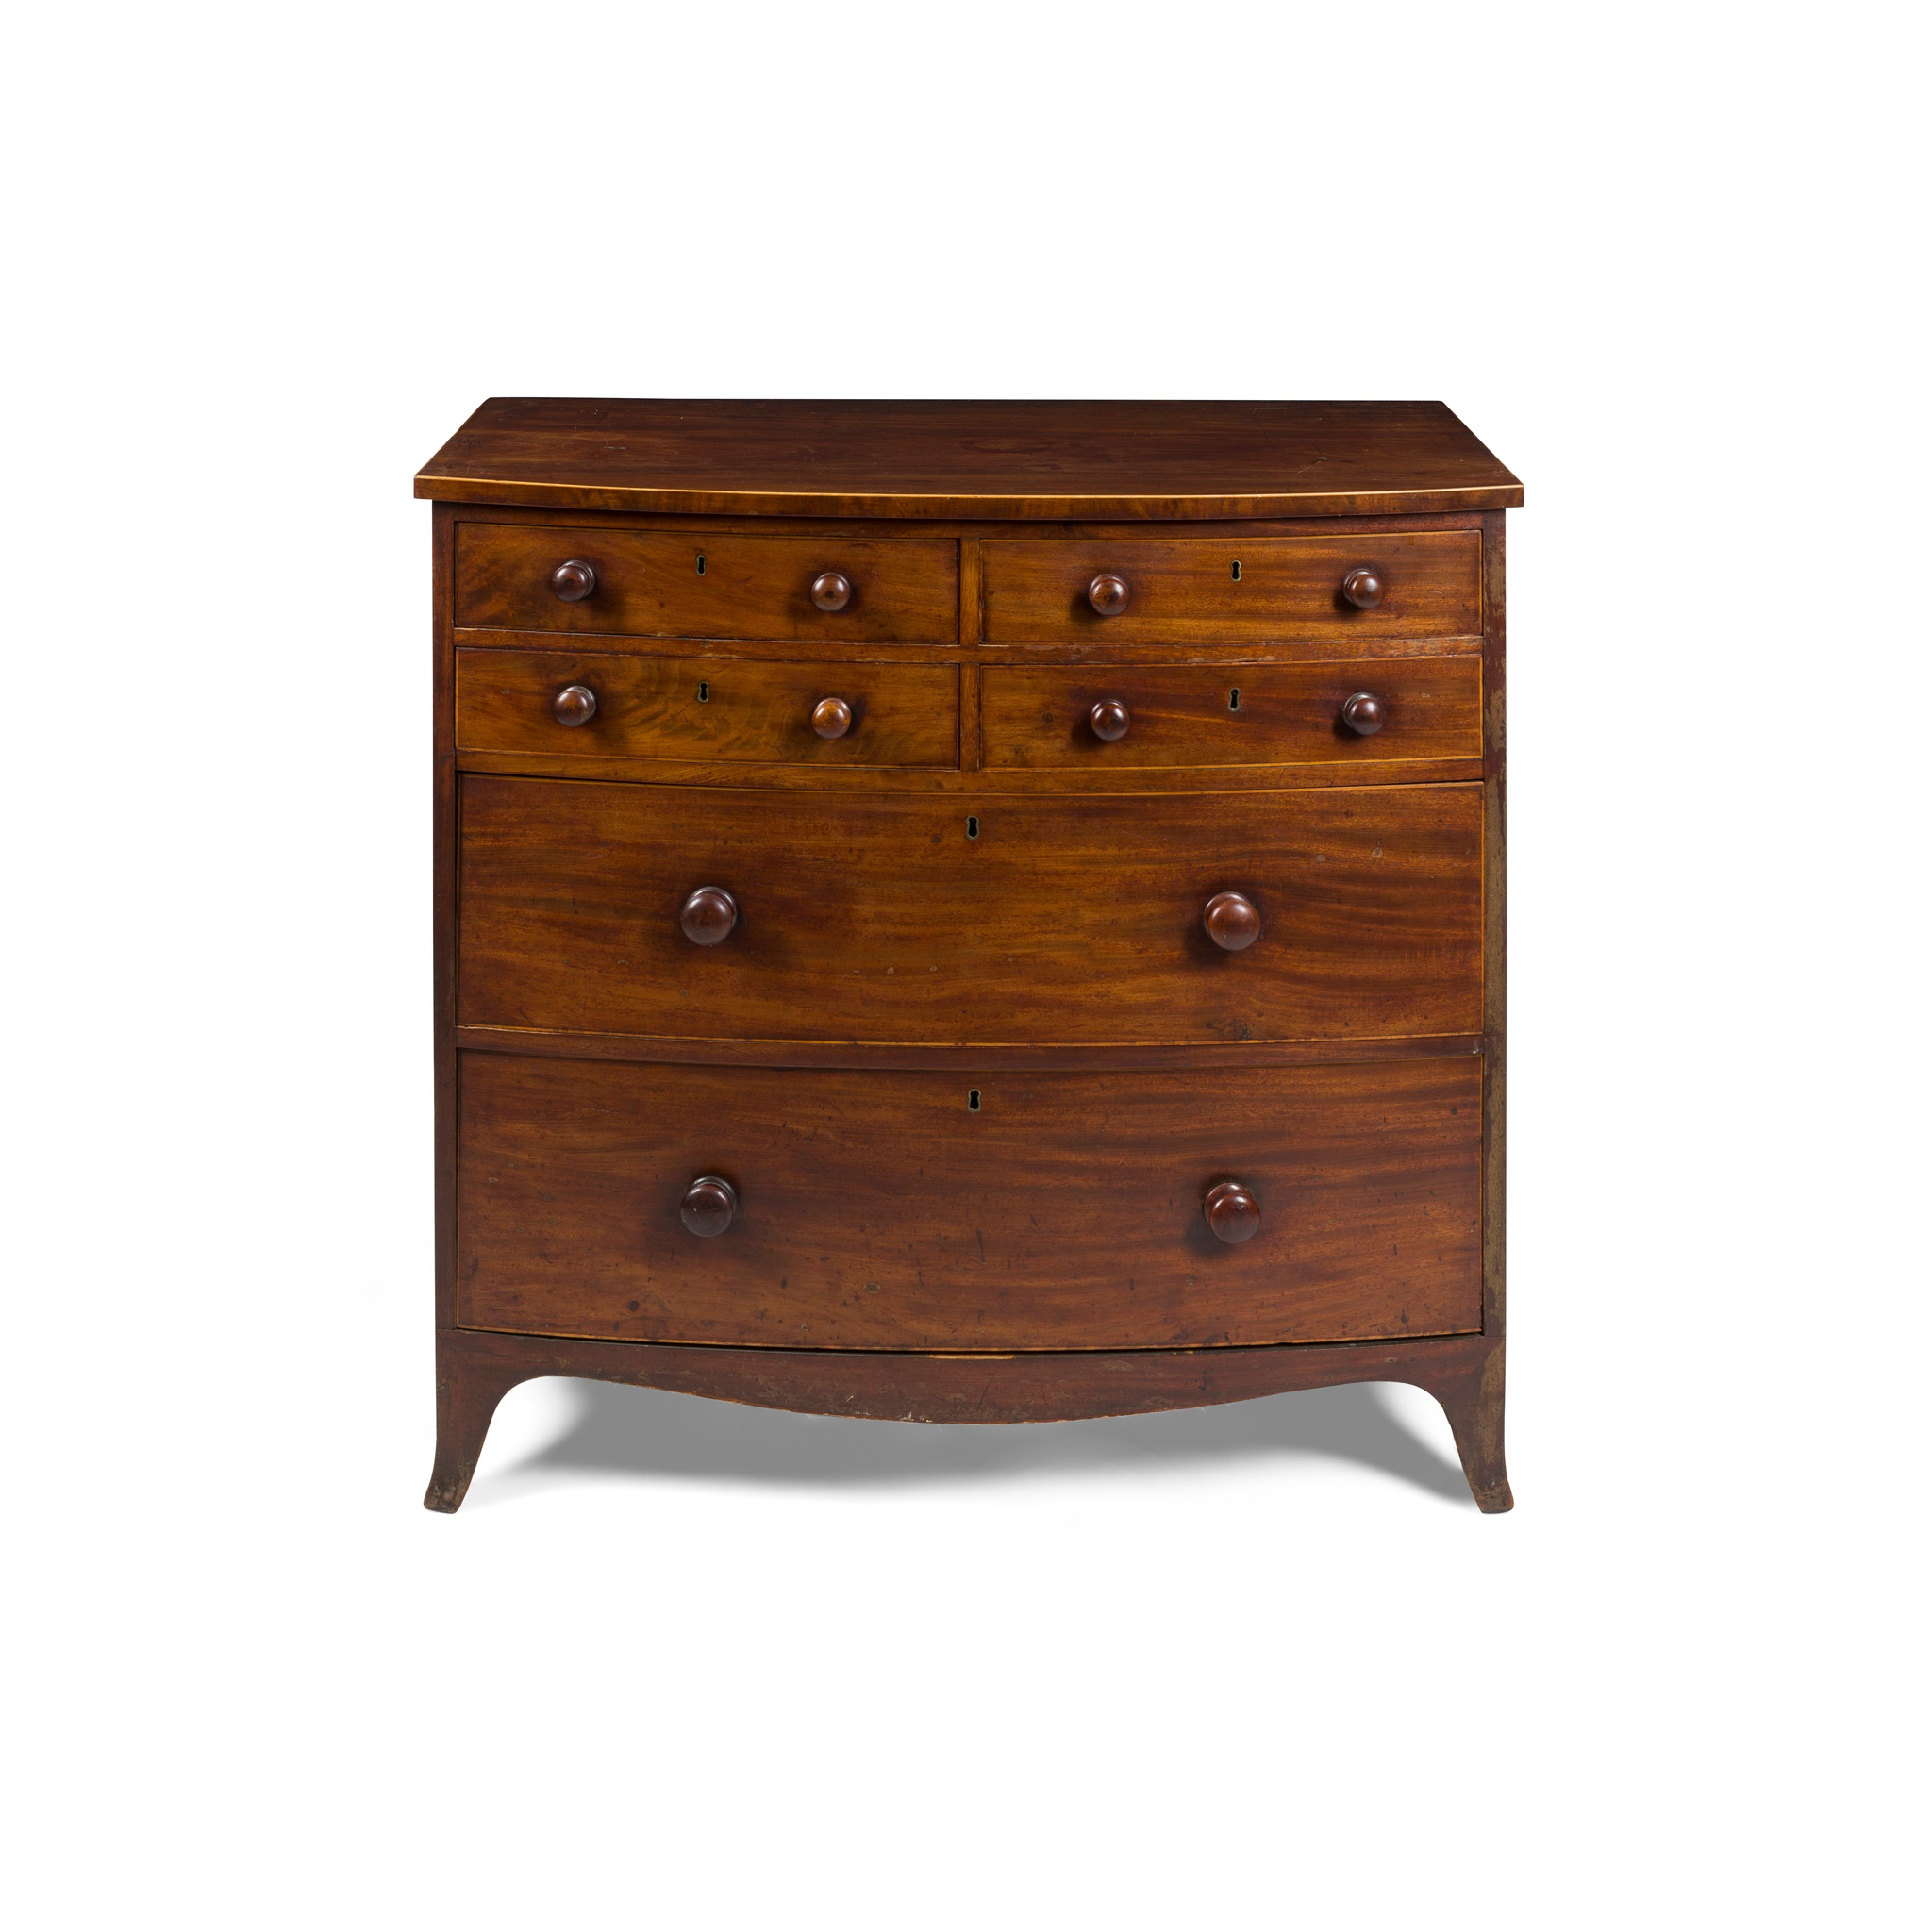 LATE GEORGE III MAHOGANY BOWFRONT CHEST OF DRAWERS EARLY 19TH CENTURY